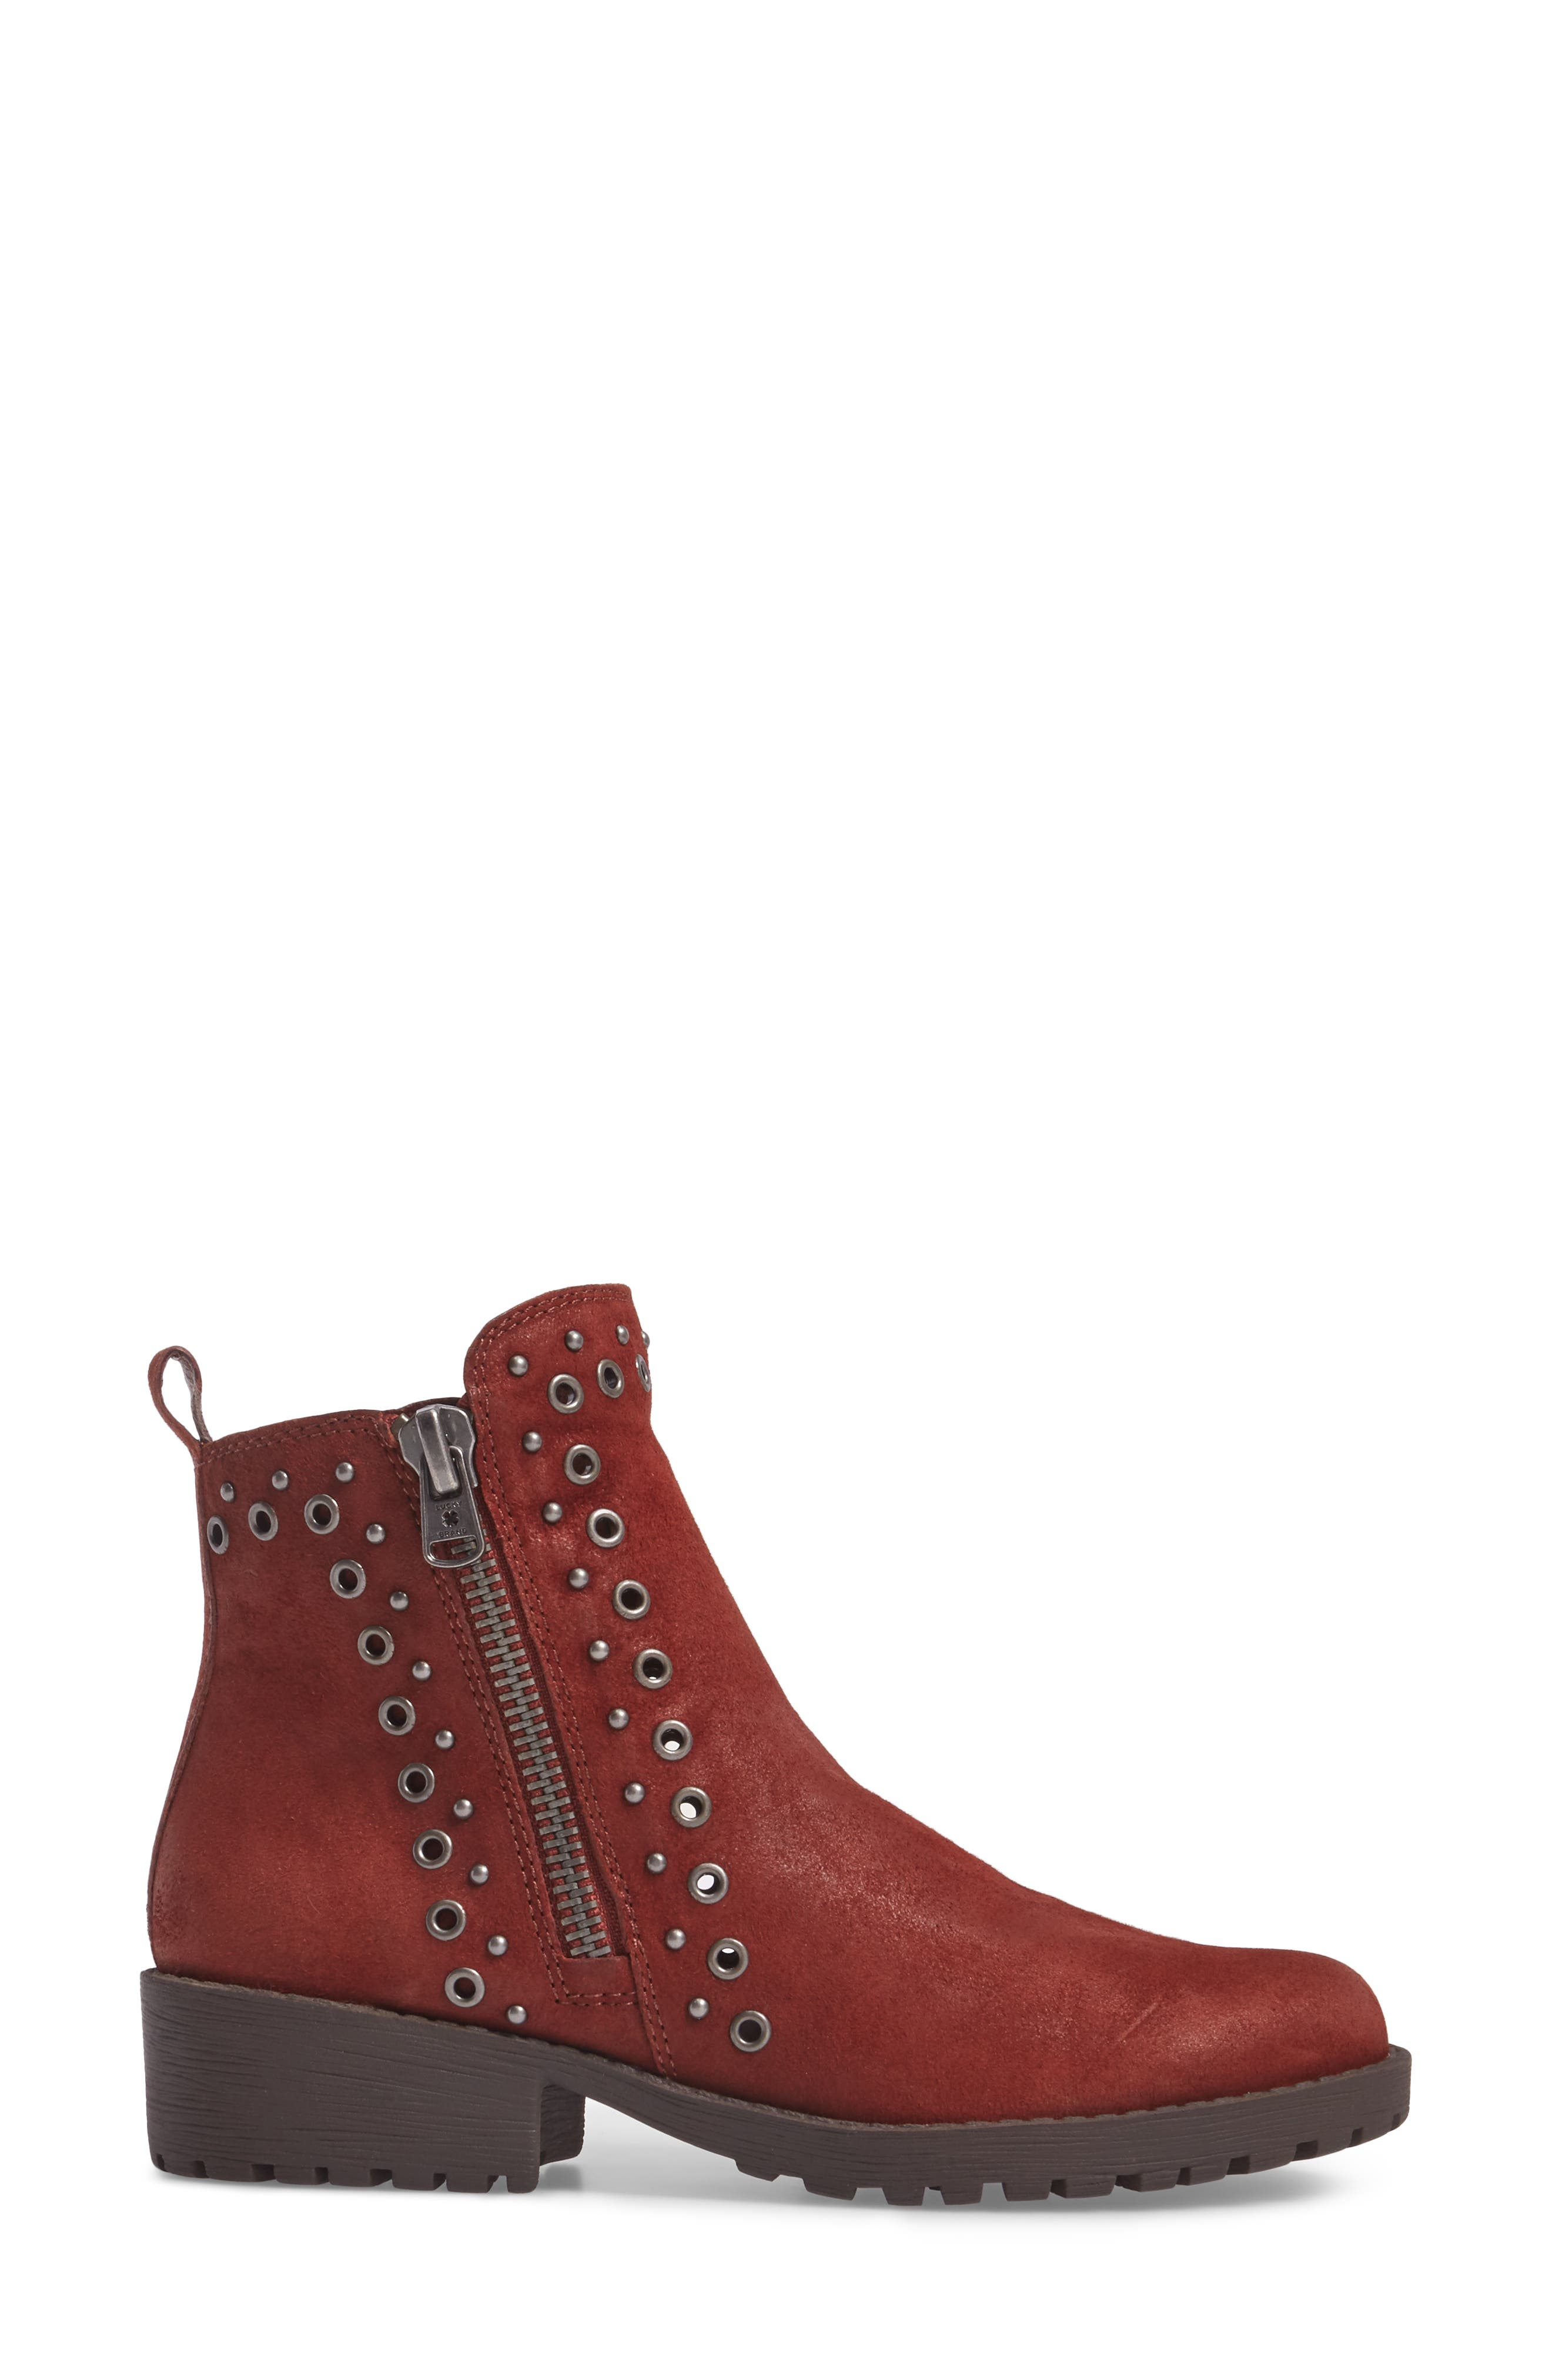 Hannie Embellished Bootie,                             Alternate thumbnail 3, color,                             Sable Leather